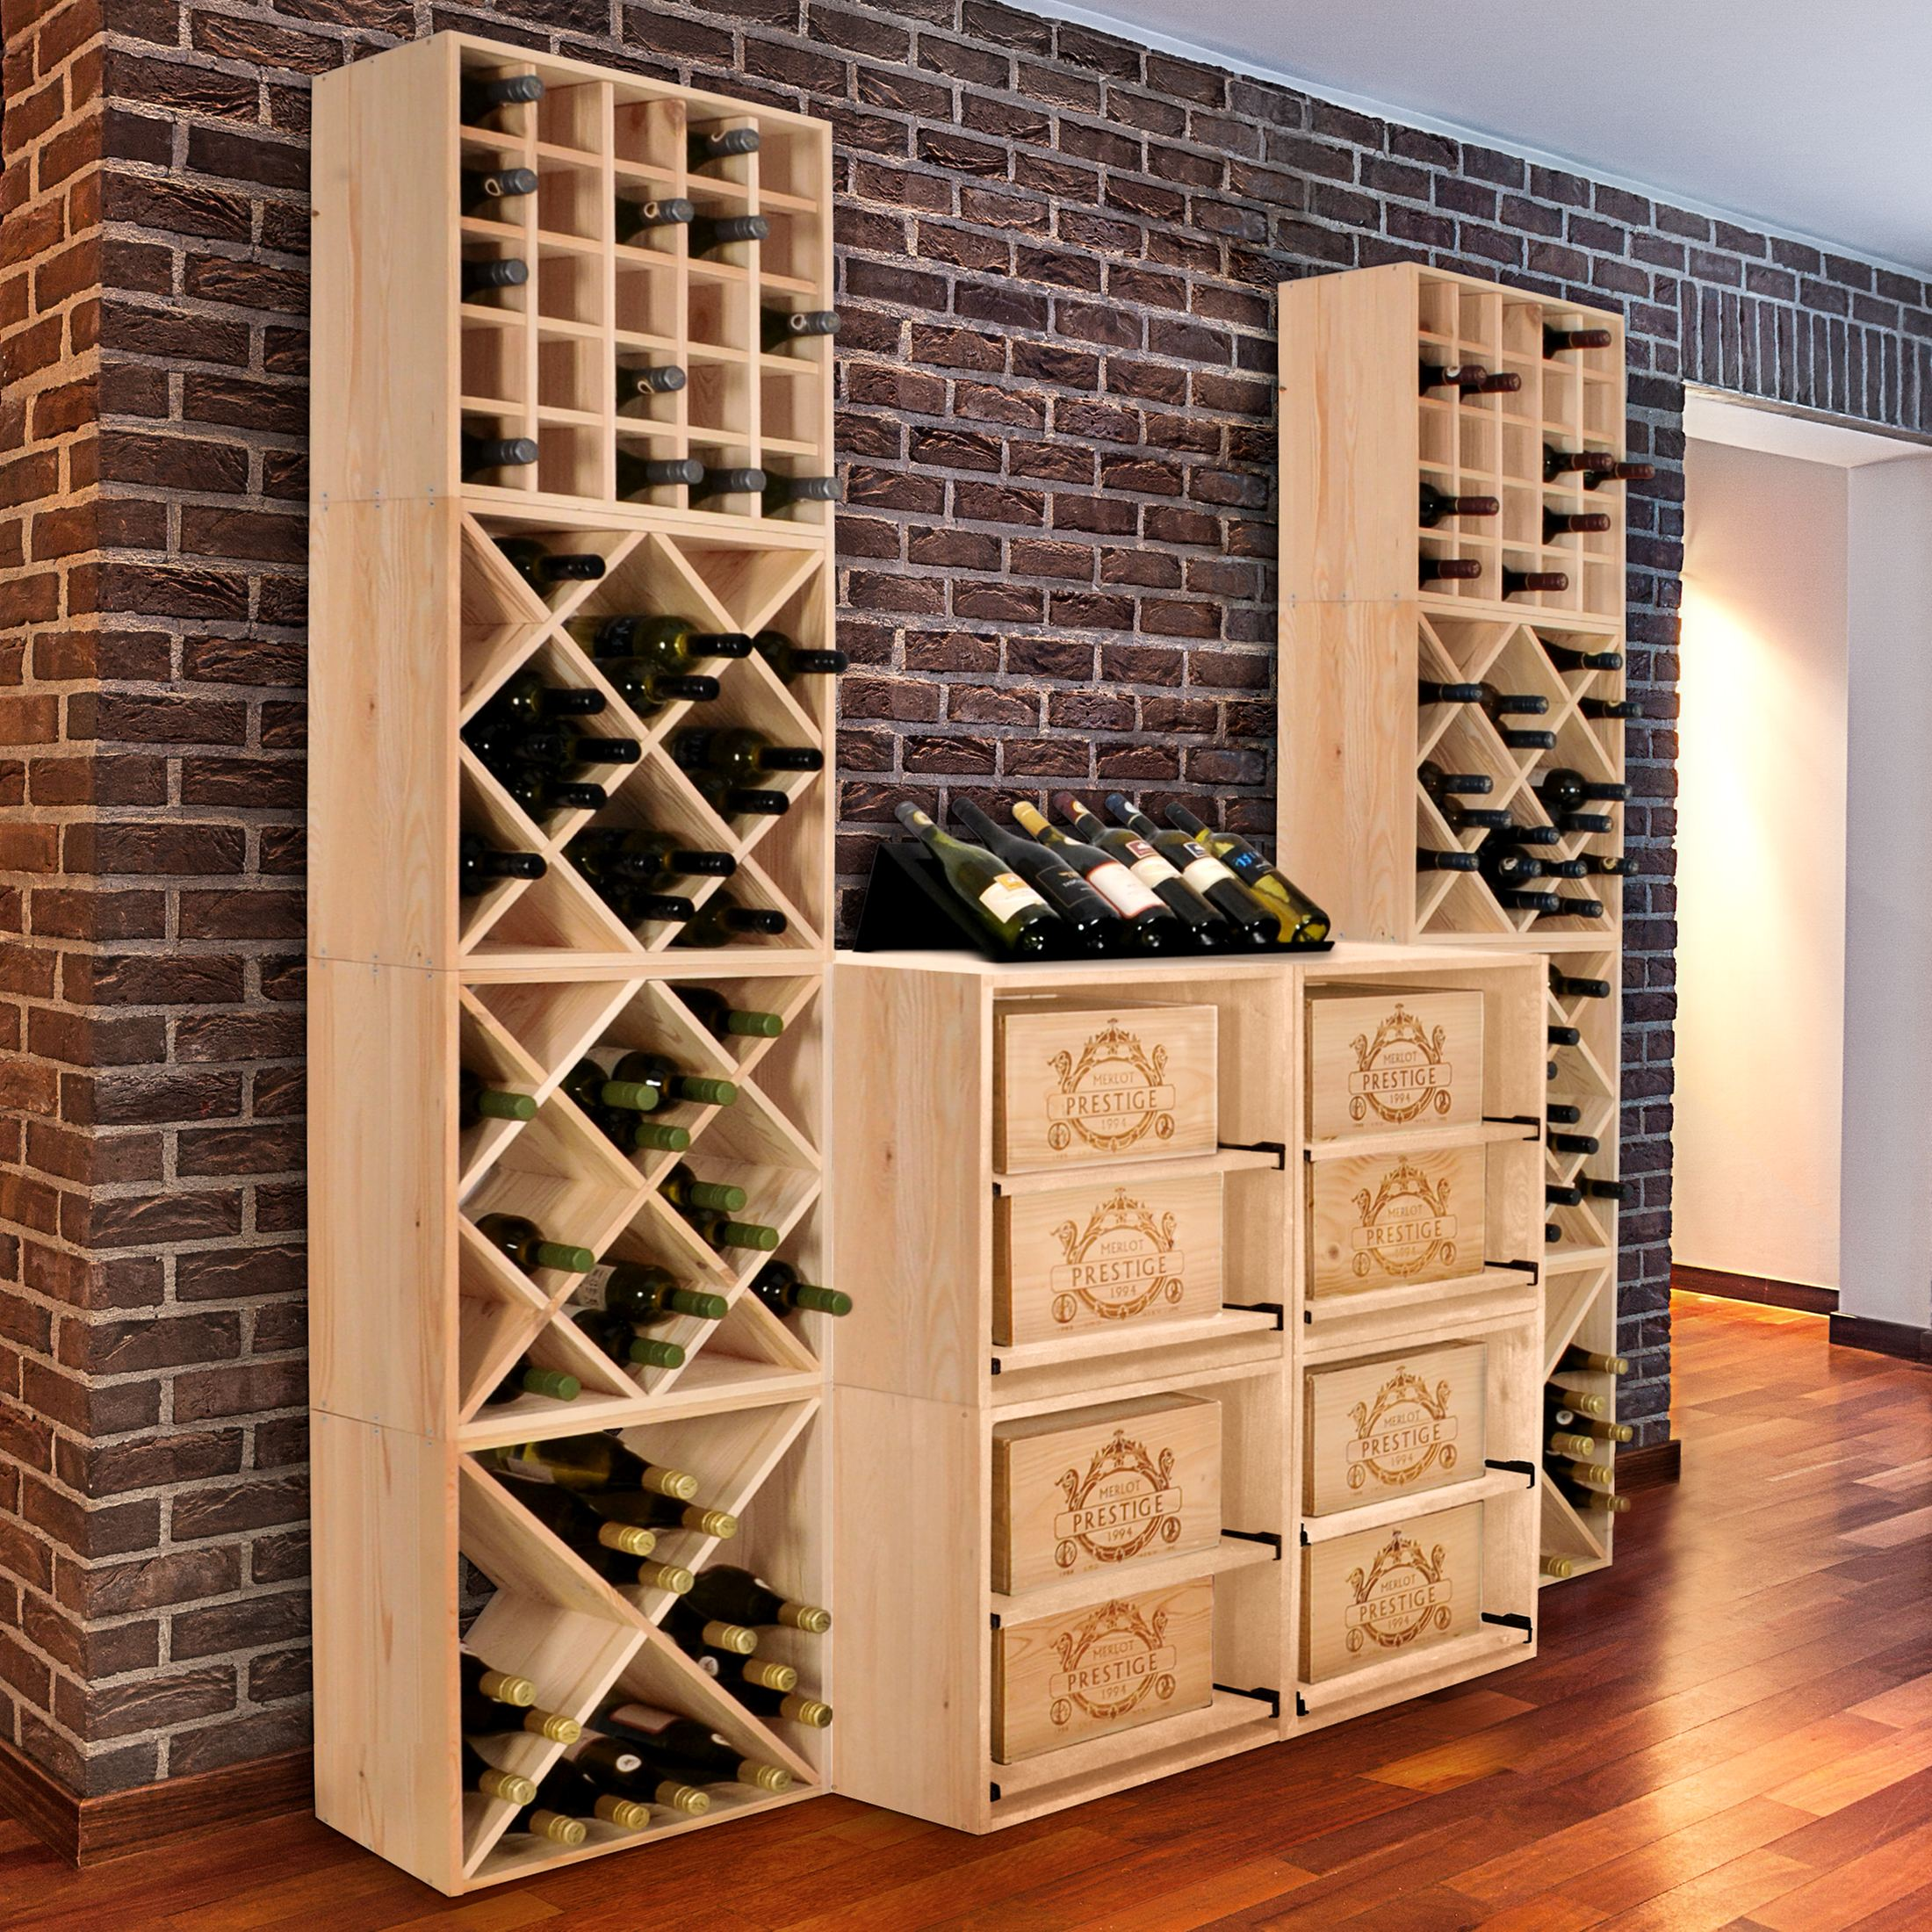 weinregal system cube 52 holz kiefer natur h 52 x b 52 x t 25 cm ebay. Black Bedroom Furniture Sets. Home Design Ideas